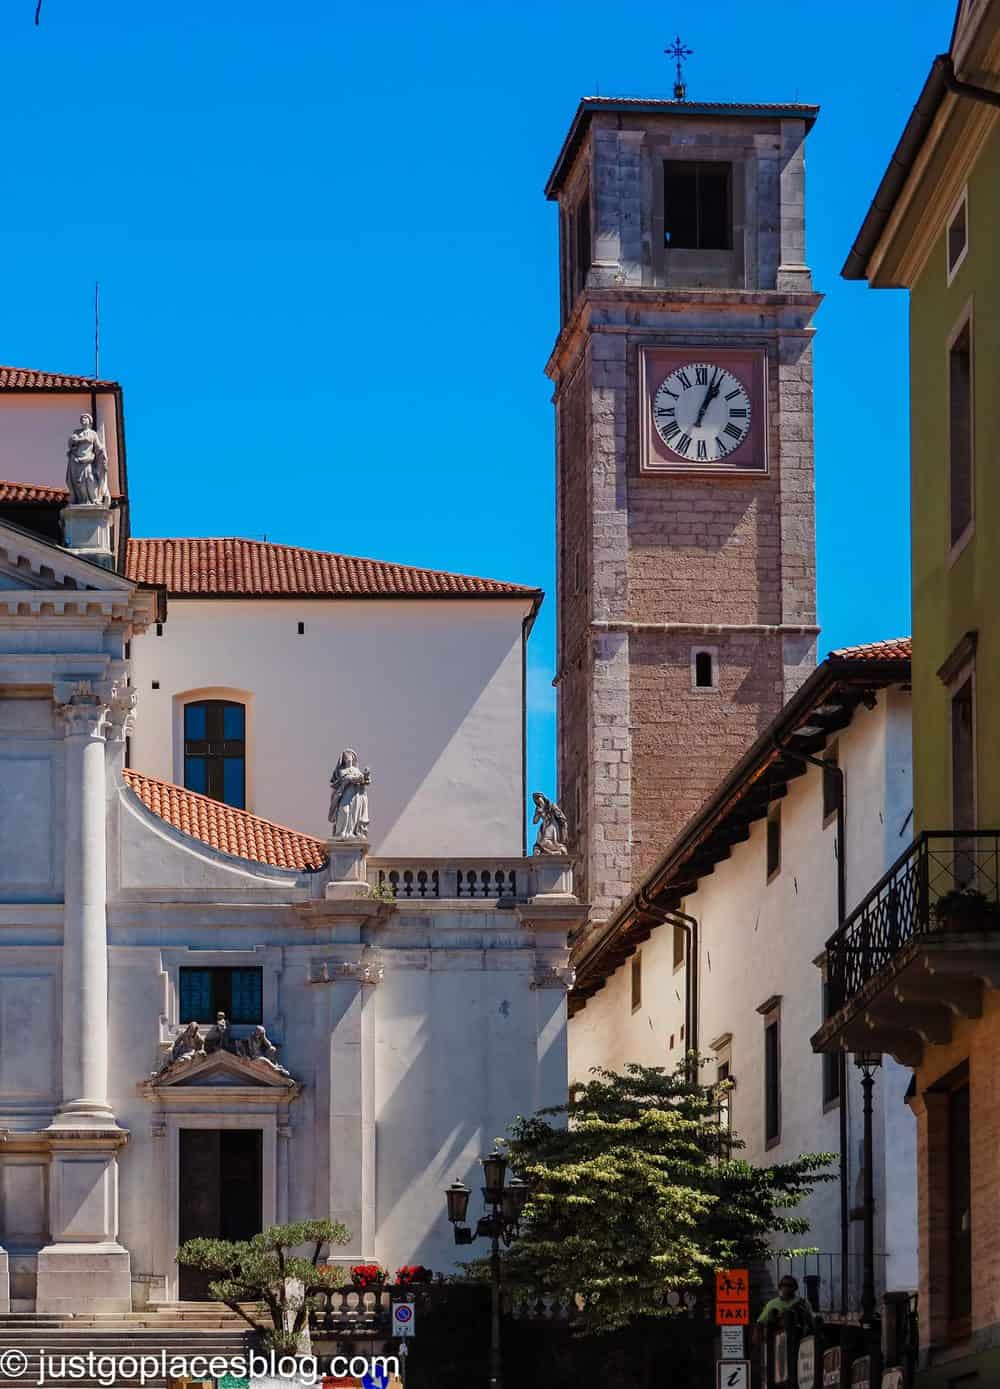 The clock tower next to the Cathedral of San Daniele de Friuli